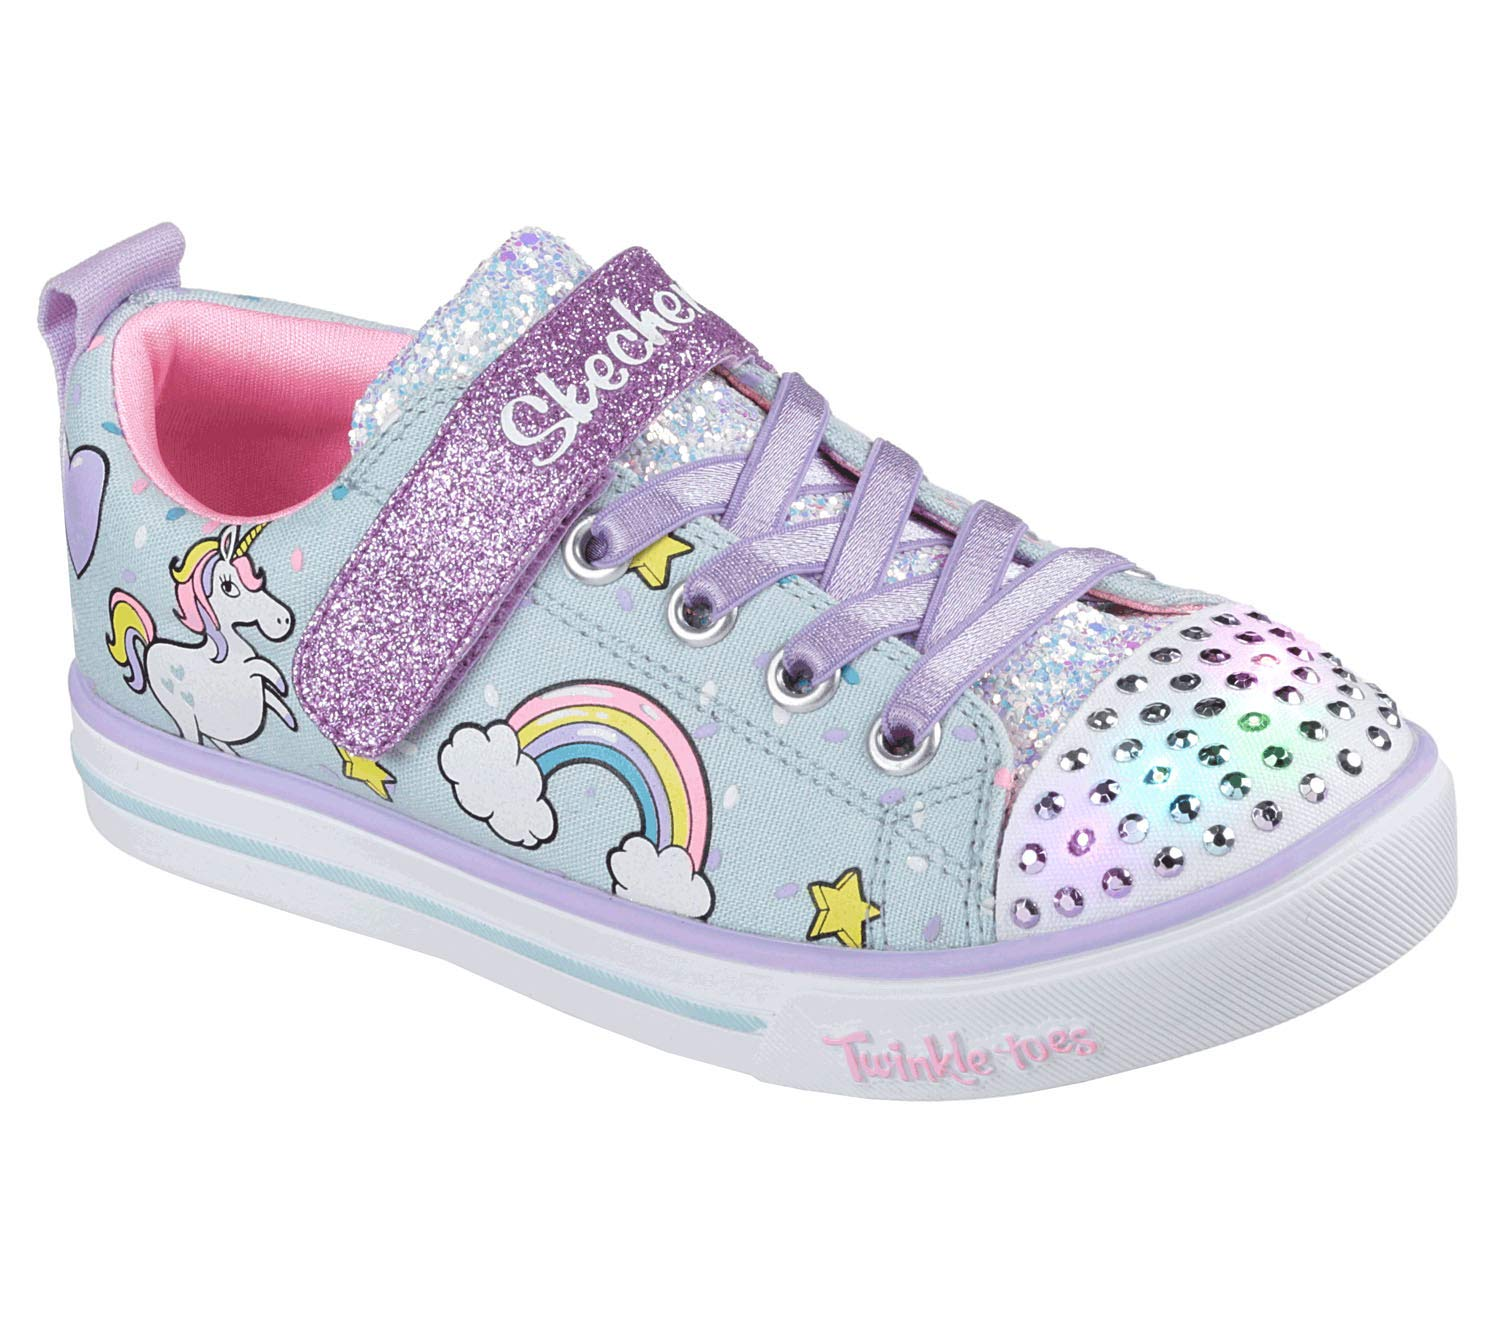 Skechers Kids Girls' Sparkle LITE Unicorn Craze Sneaker, Light BlueMulti, 3 Medium US Little Kid